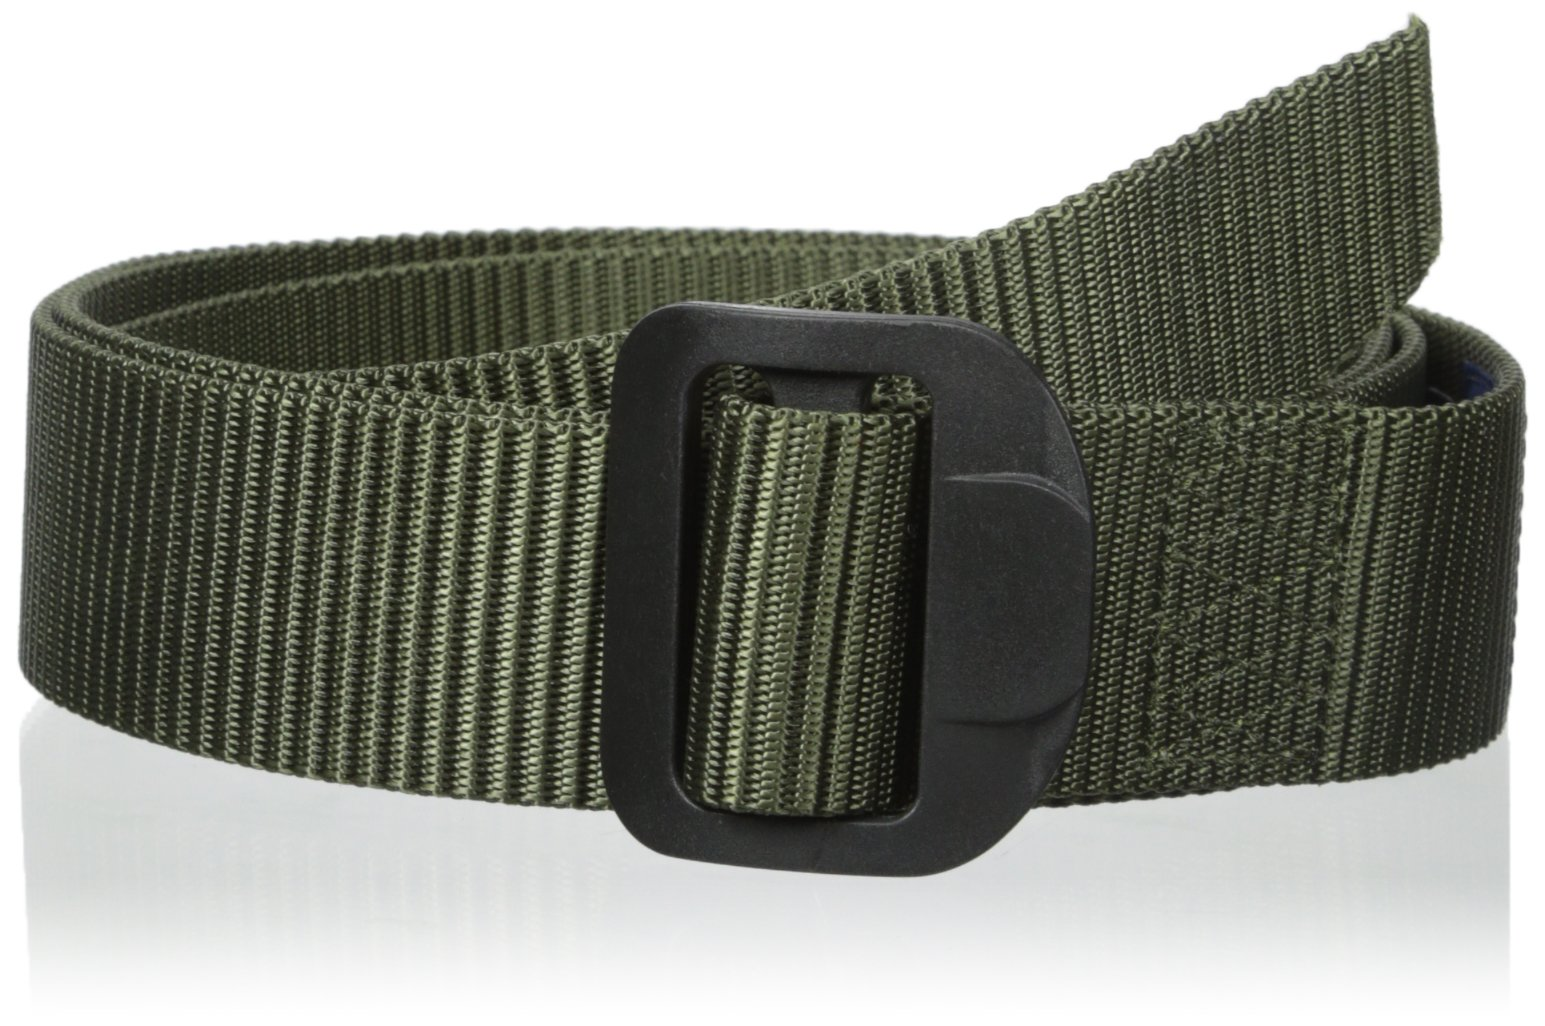 Propper Tactical Duty Belt, 52-54, Olive by Propper